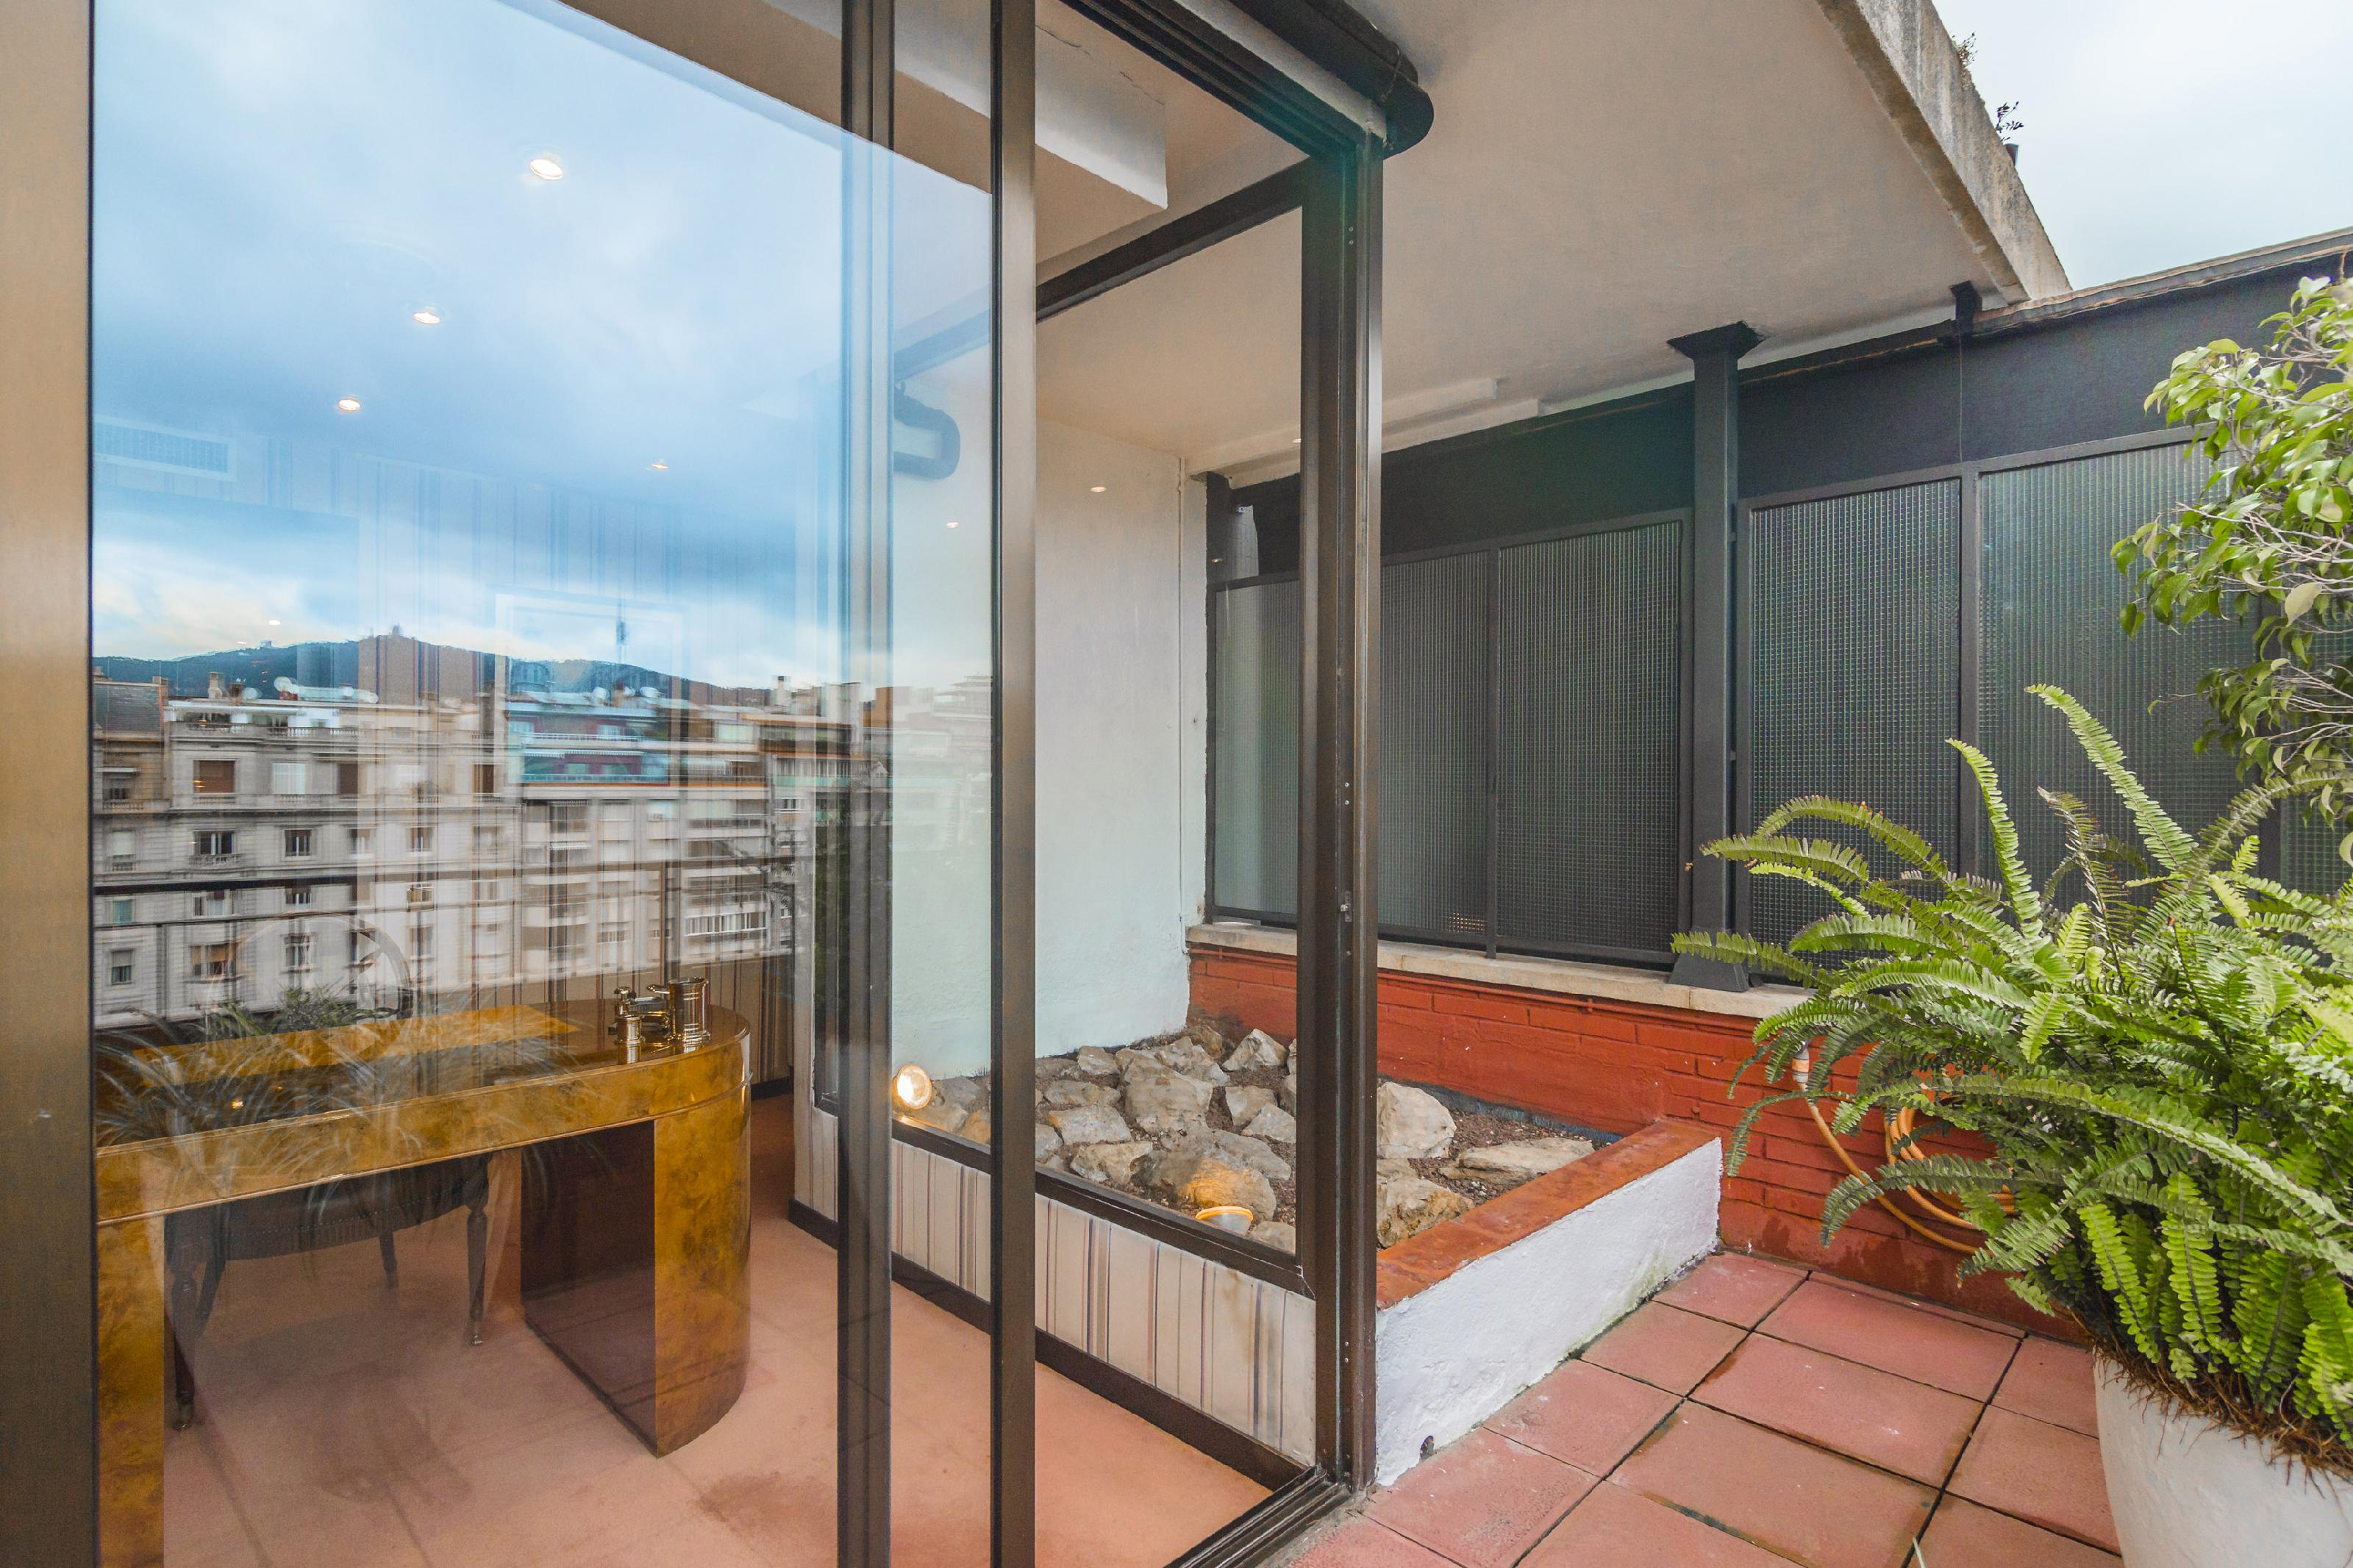 223855 Penthouse for sale in Les Corts, Les Corts 13